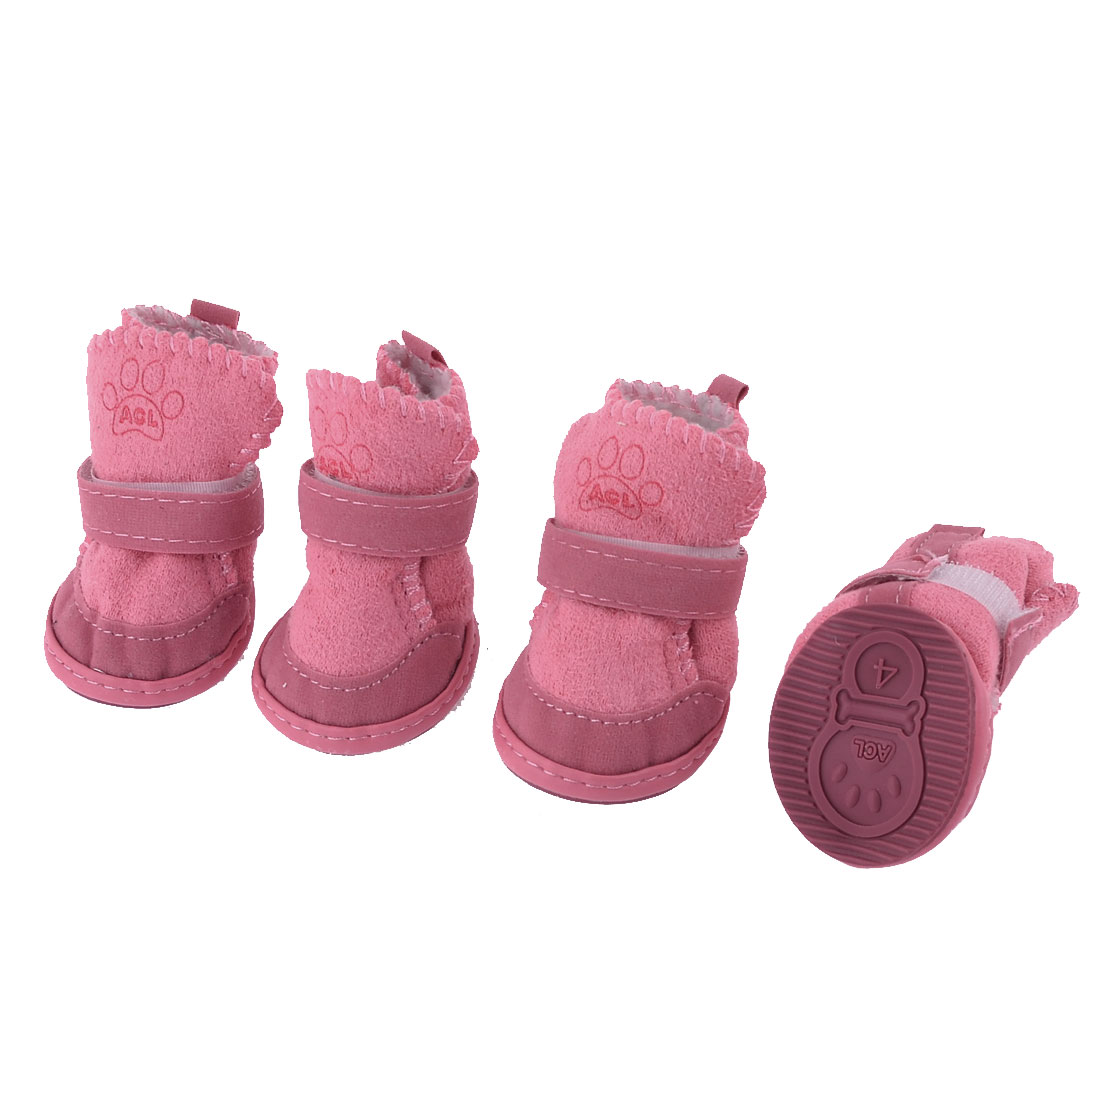 Unique Bargains 2 Pairs Pink Warm Plush Inner Paw Pattern Pet Dog Doggy Shoes Boots Booties XS